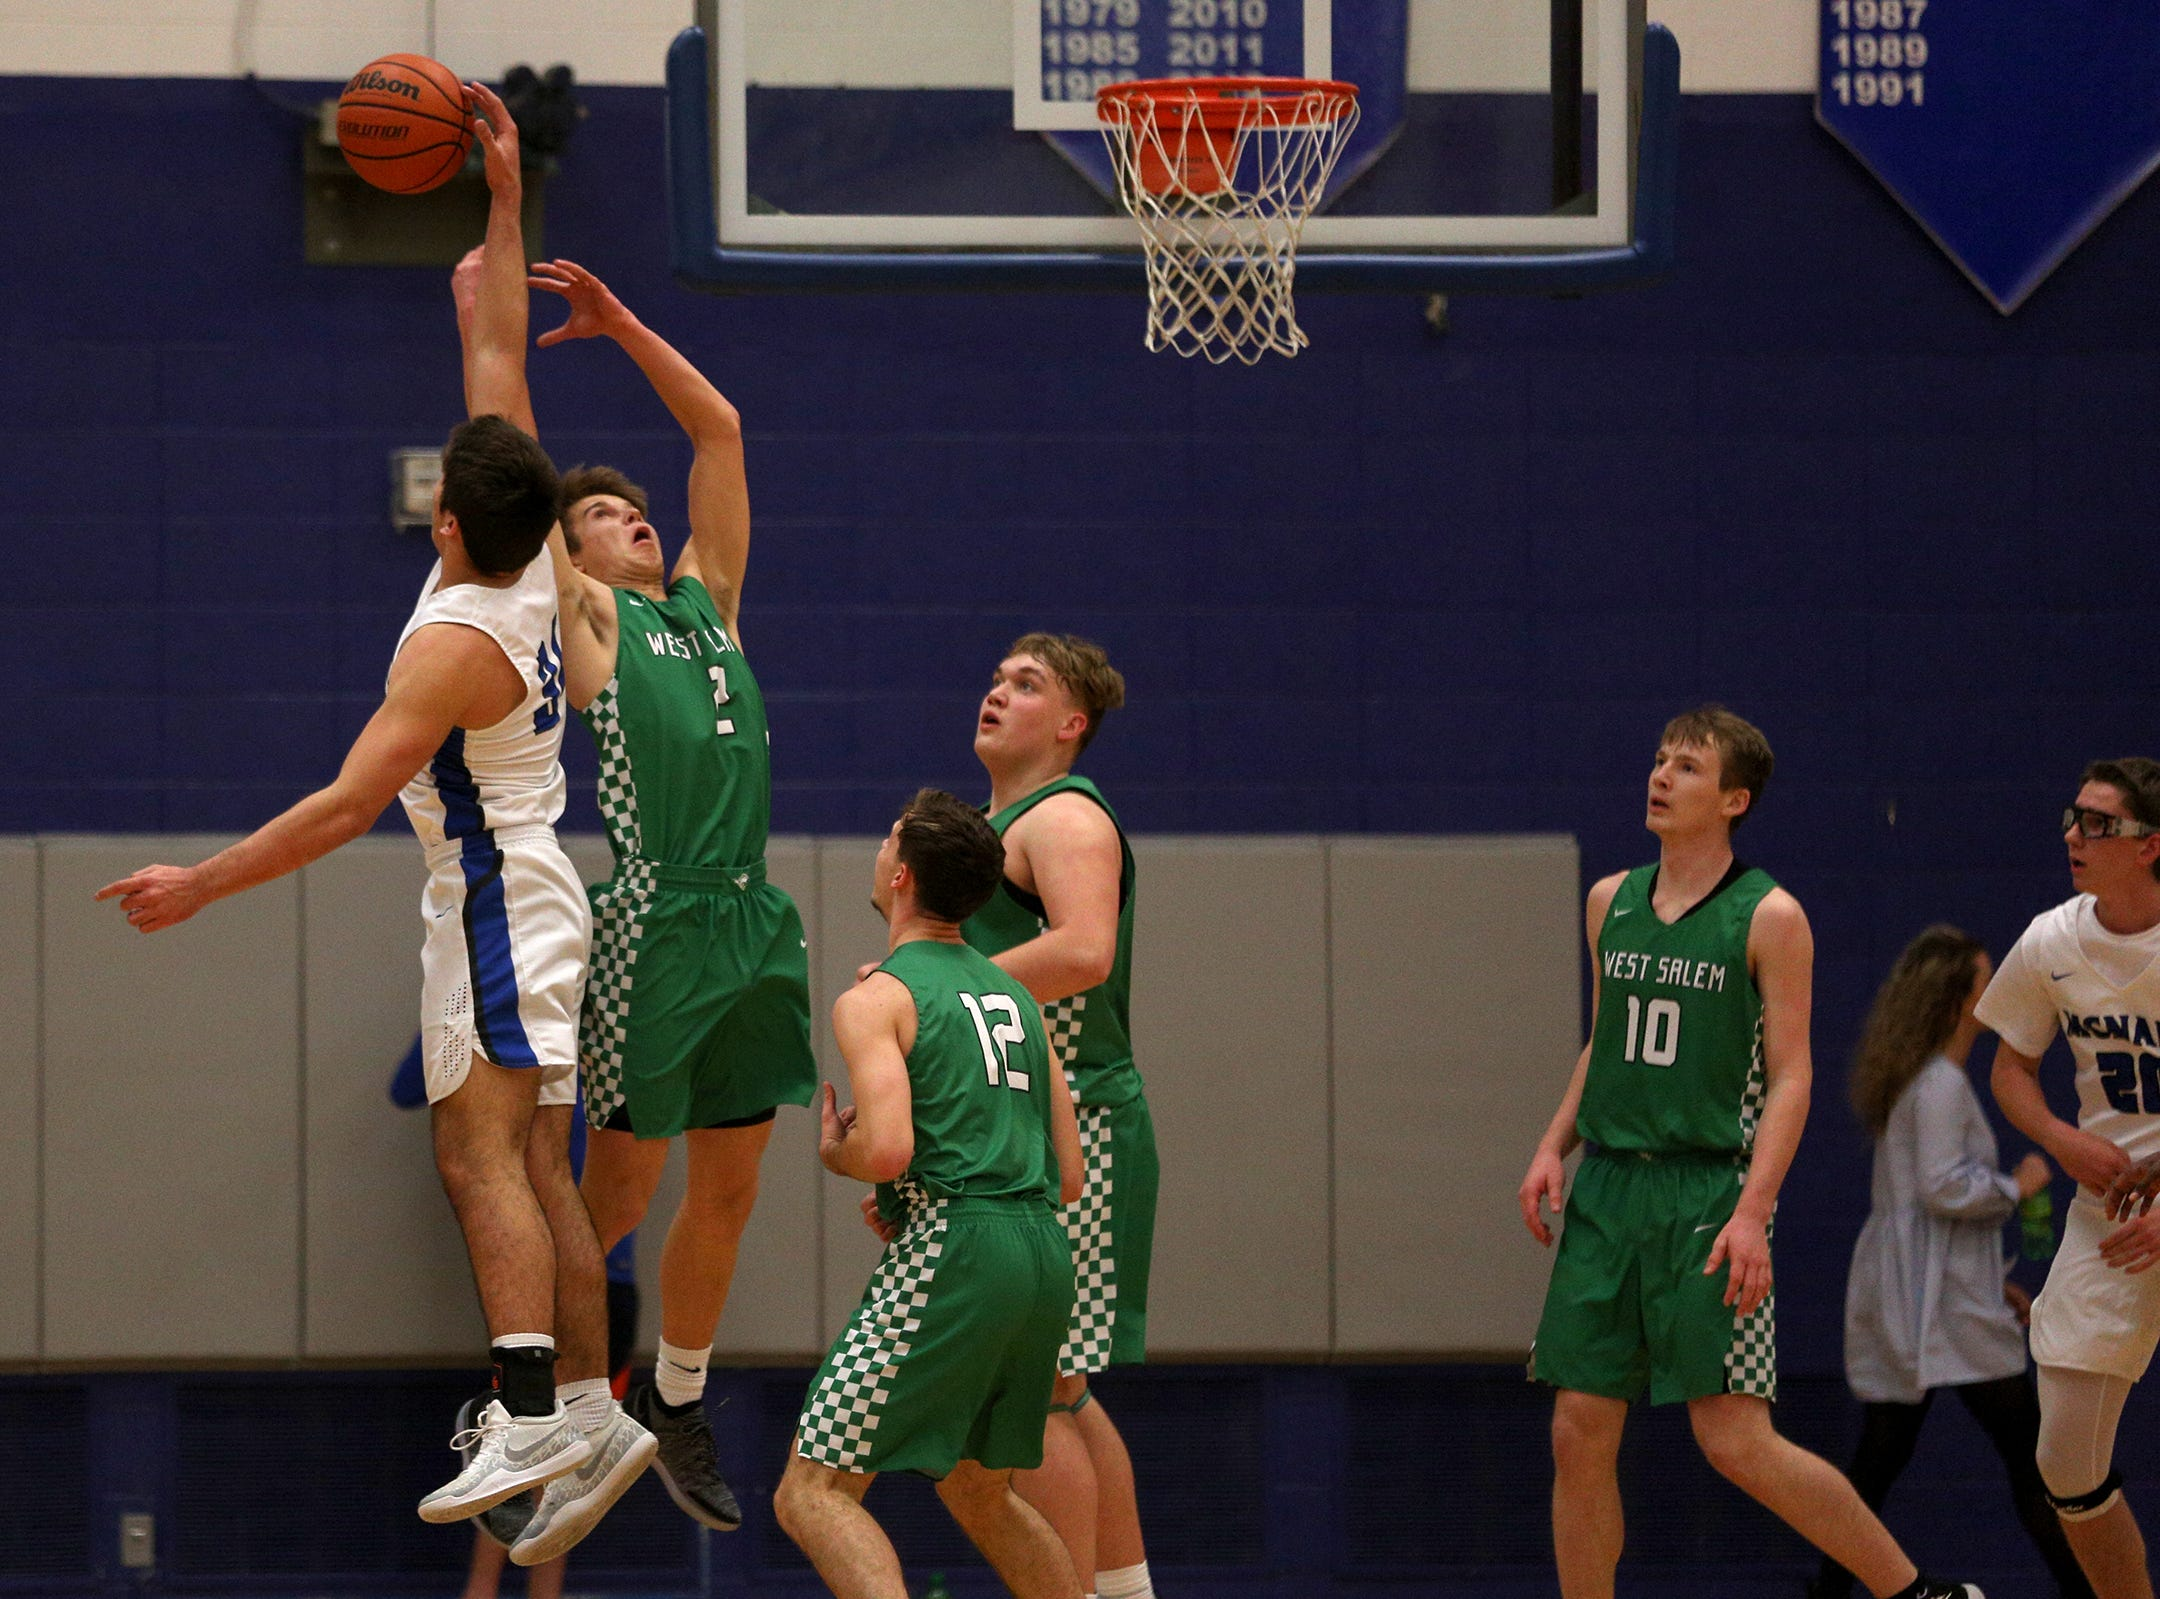 McNary's Boston Smith (30) takes control of the ball during the McNary boys basketball vs. West Salem game at McNary High School in Keizer on Wednesday, Feb. 6, 2019.